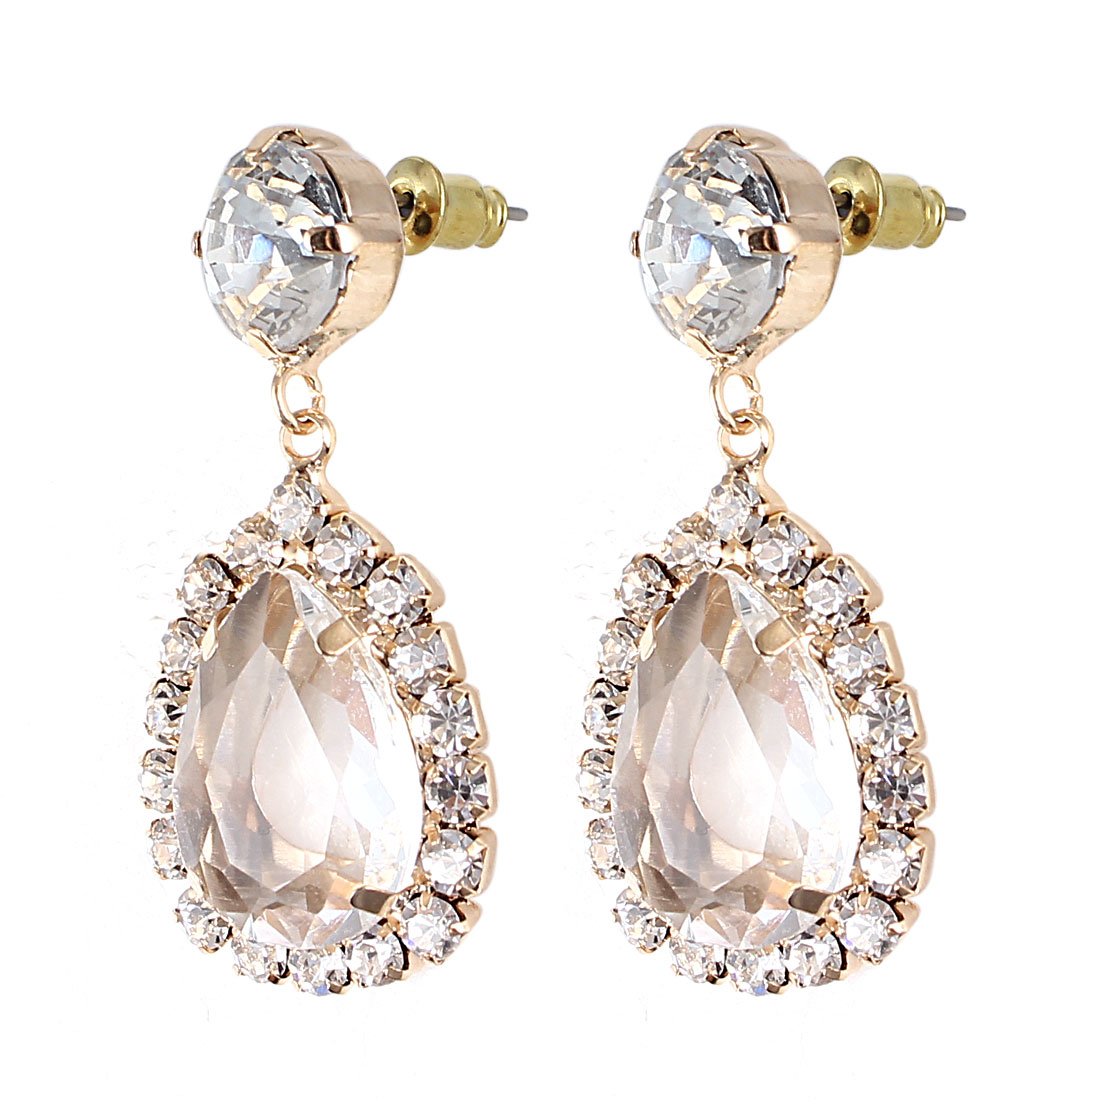 Women Waterdrop Clear Faceted Faux Crystal Inlaid Metal Stud Earrings Ear Pins Nails Gold Tone Pair